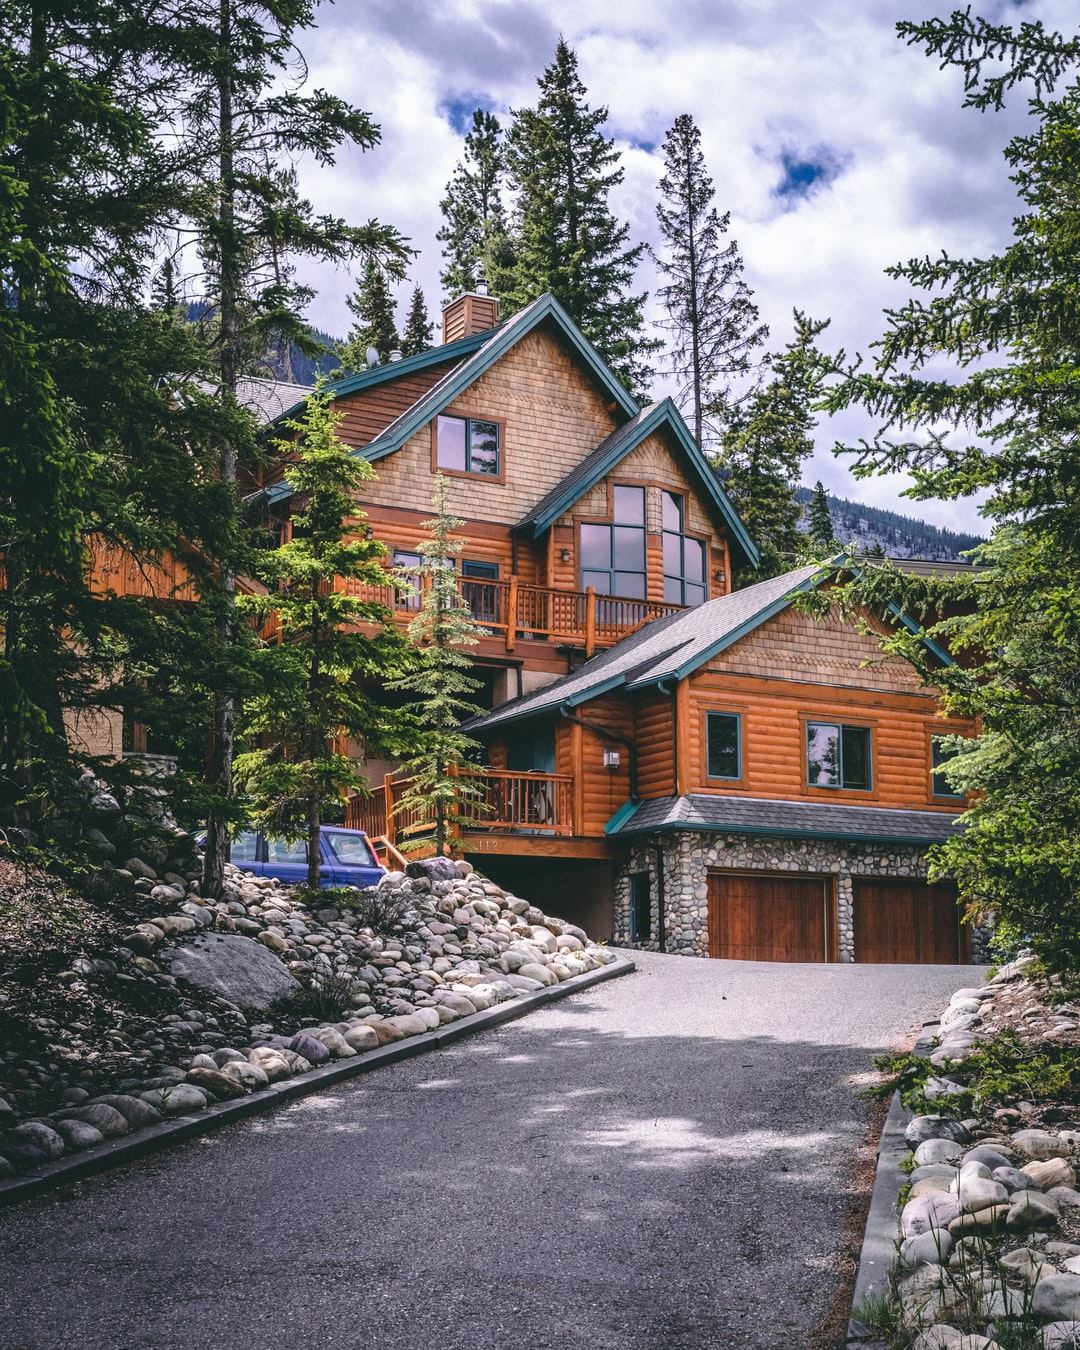 An absolutely beautiful home on Cave Avenue, Banff. I would LOVE to live here!